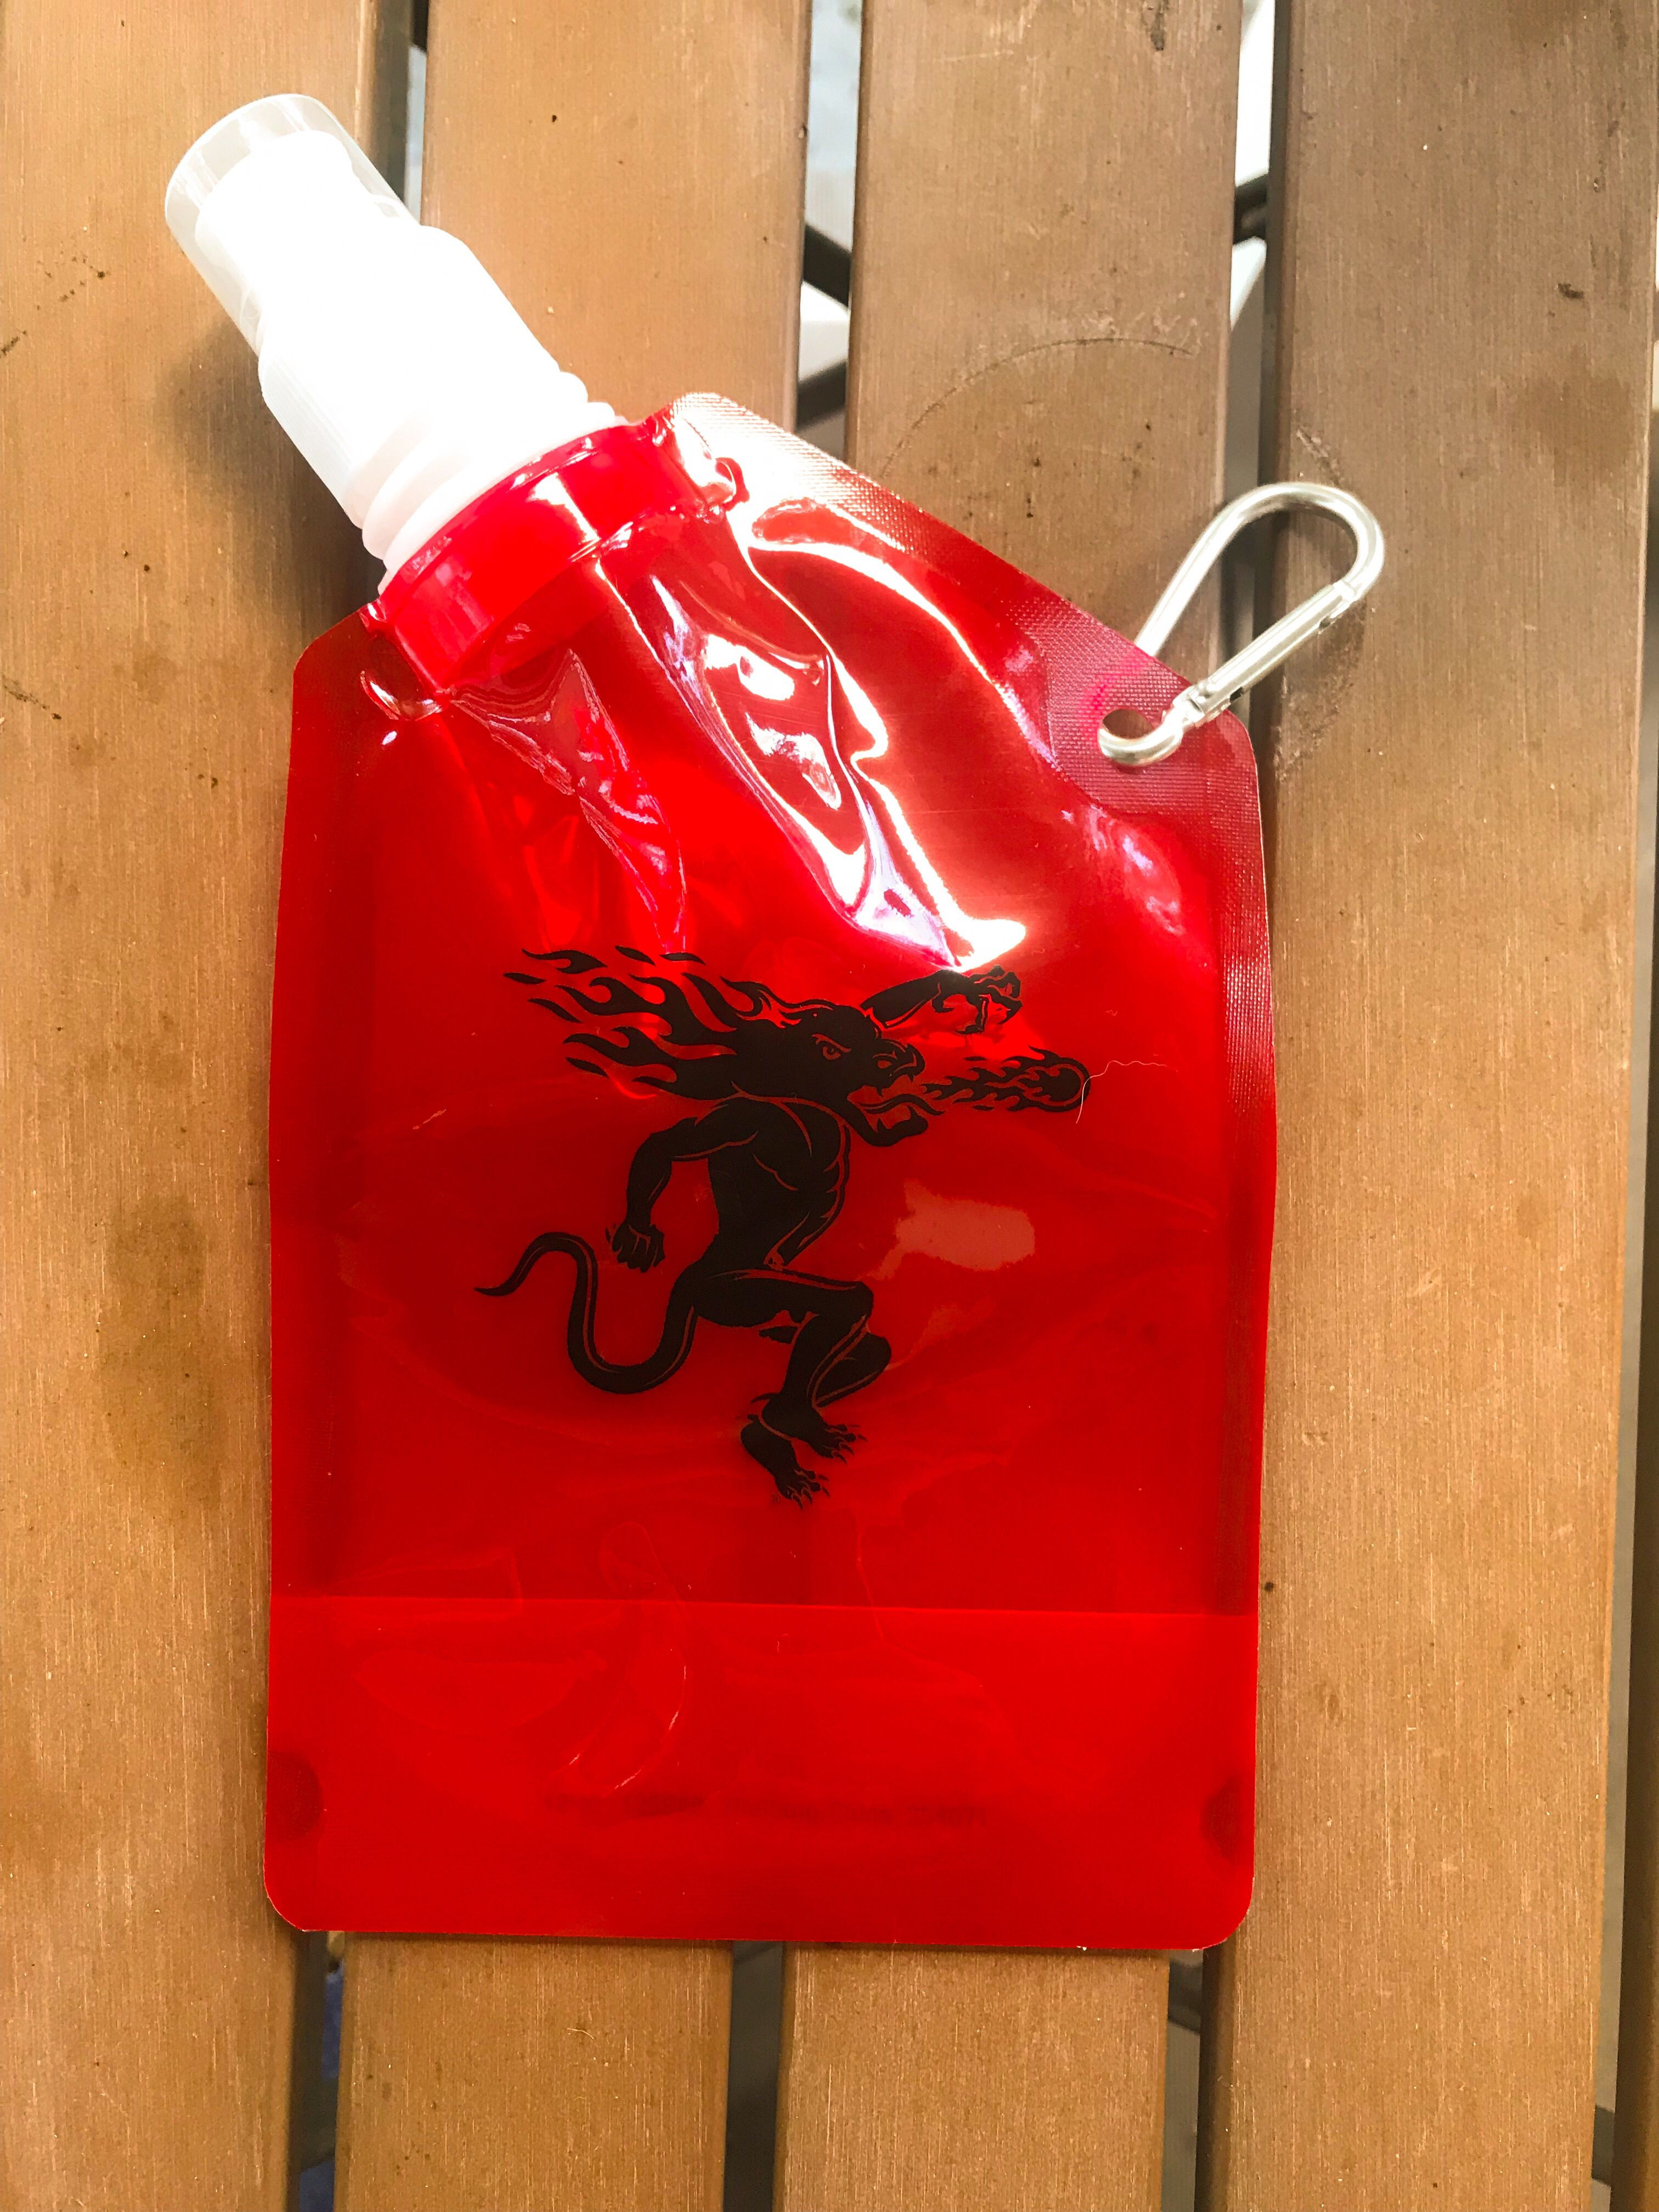 Just Got My New Fireball Flask To All You Cops Out There Its A Water Bottle Can T Wait To Try It For New Years Eve To Keep Warm Fireball St Augustine